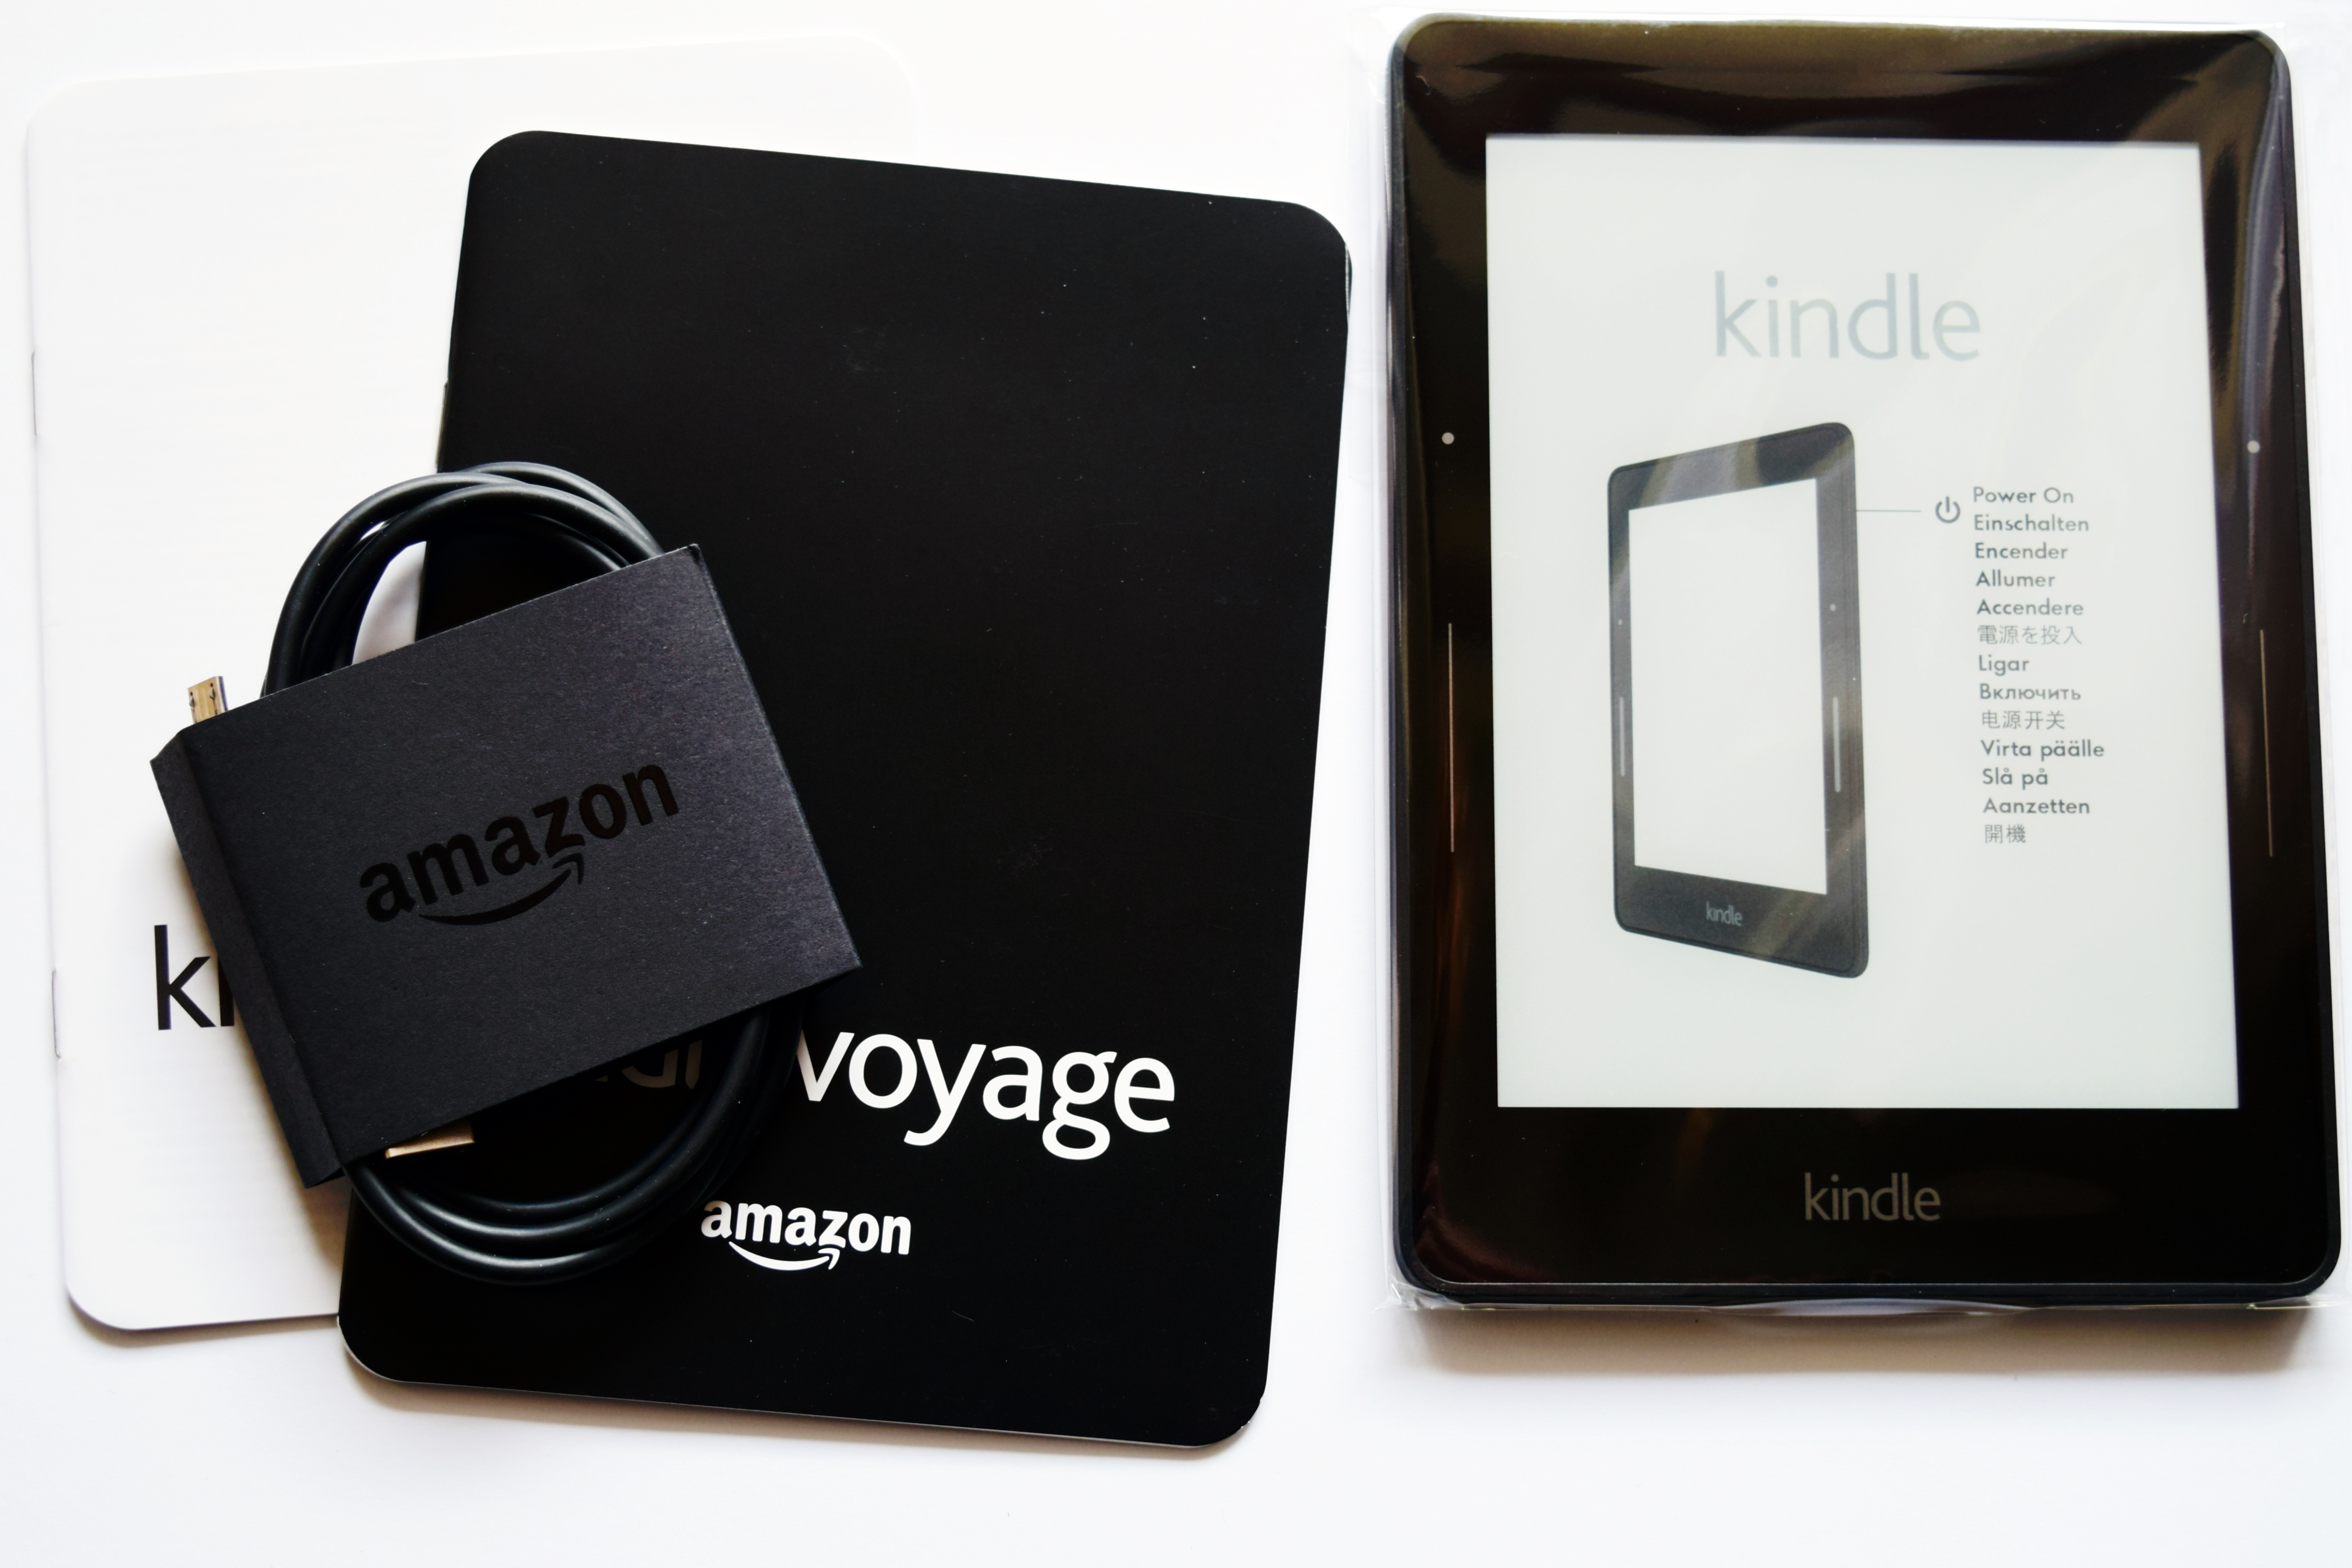 Recenzja e-booka Kindle Voyage z Amazon.com.